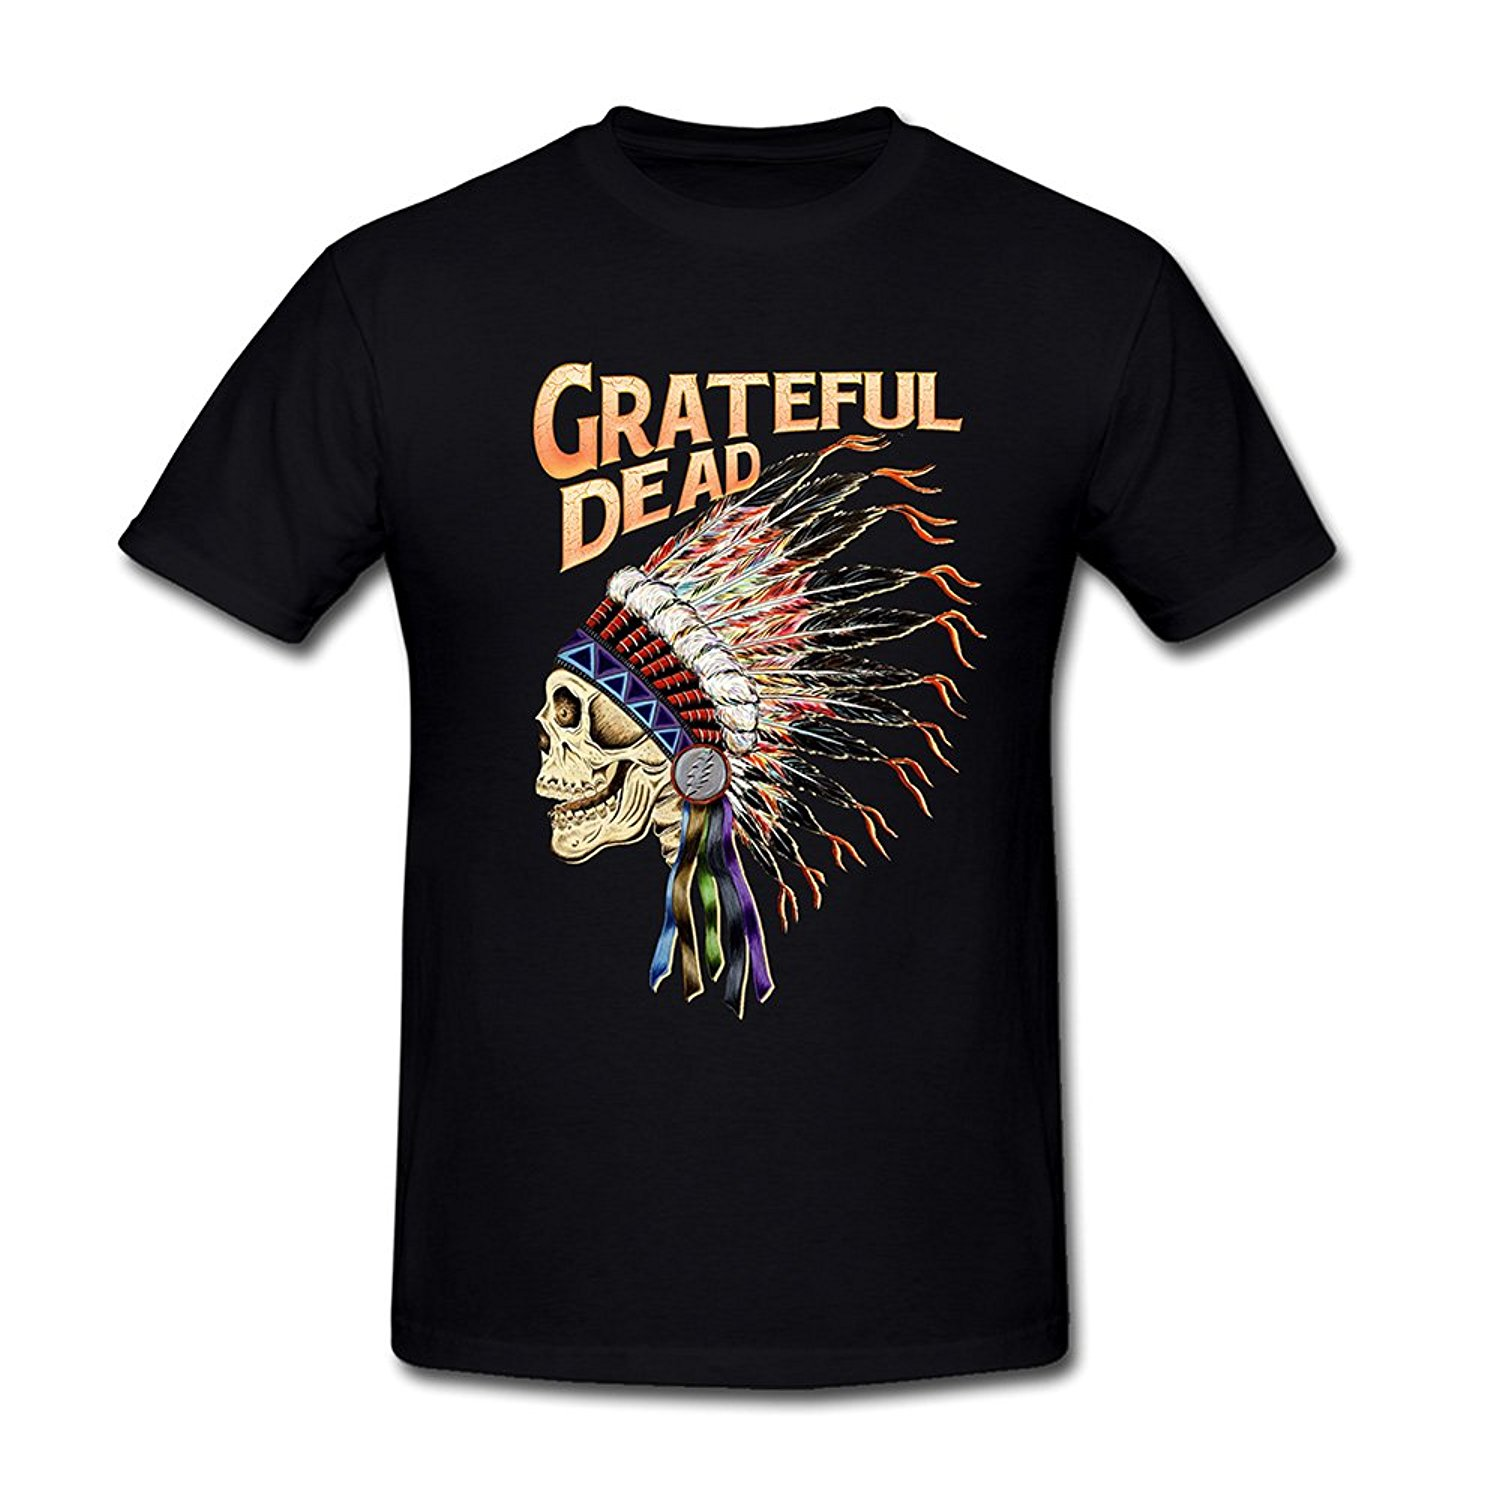 New 2017 Summer Fashion Printing Machine Crew Neck funny Mens Grateful Dead Spring 1990:So Glad T-Shirt Sizes S-3XL